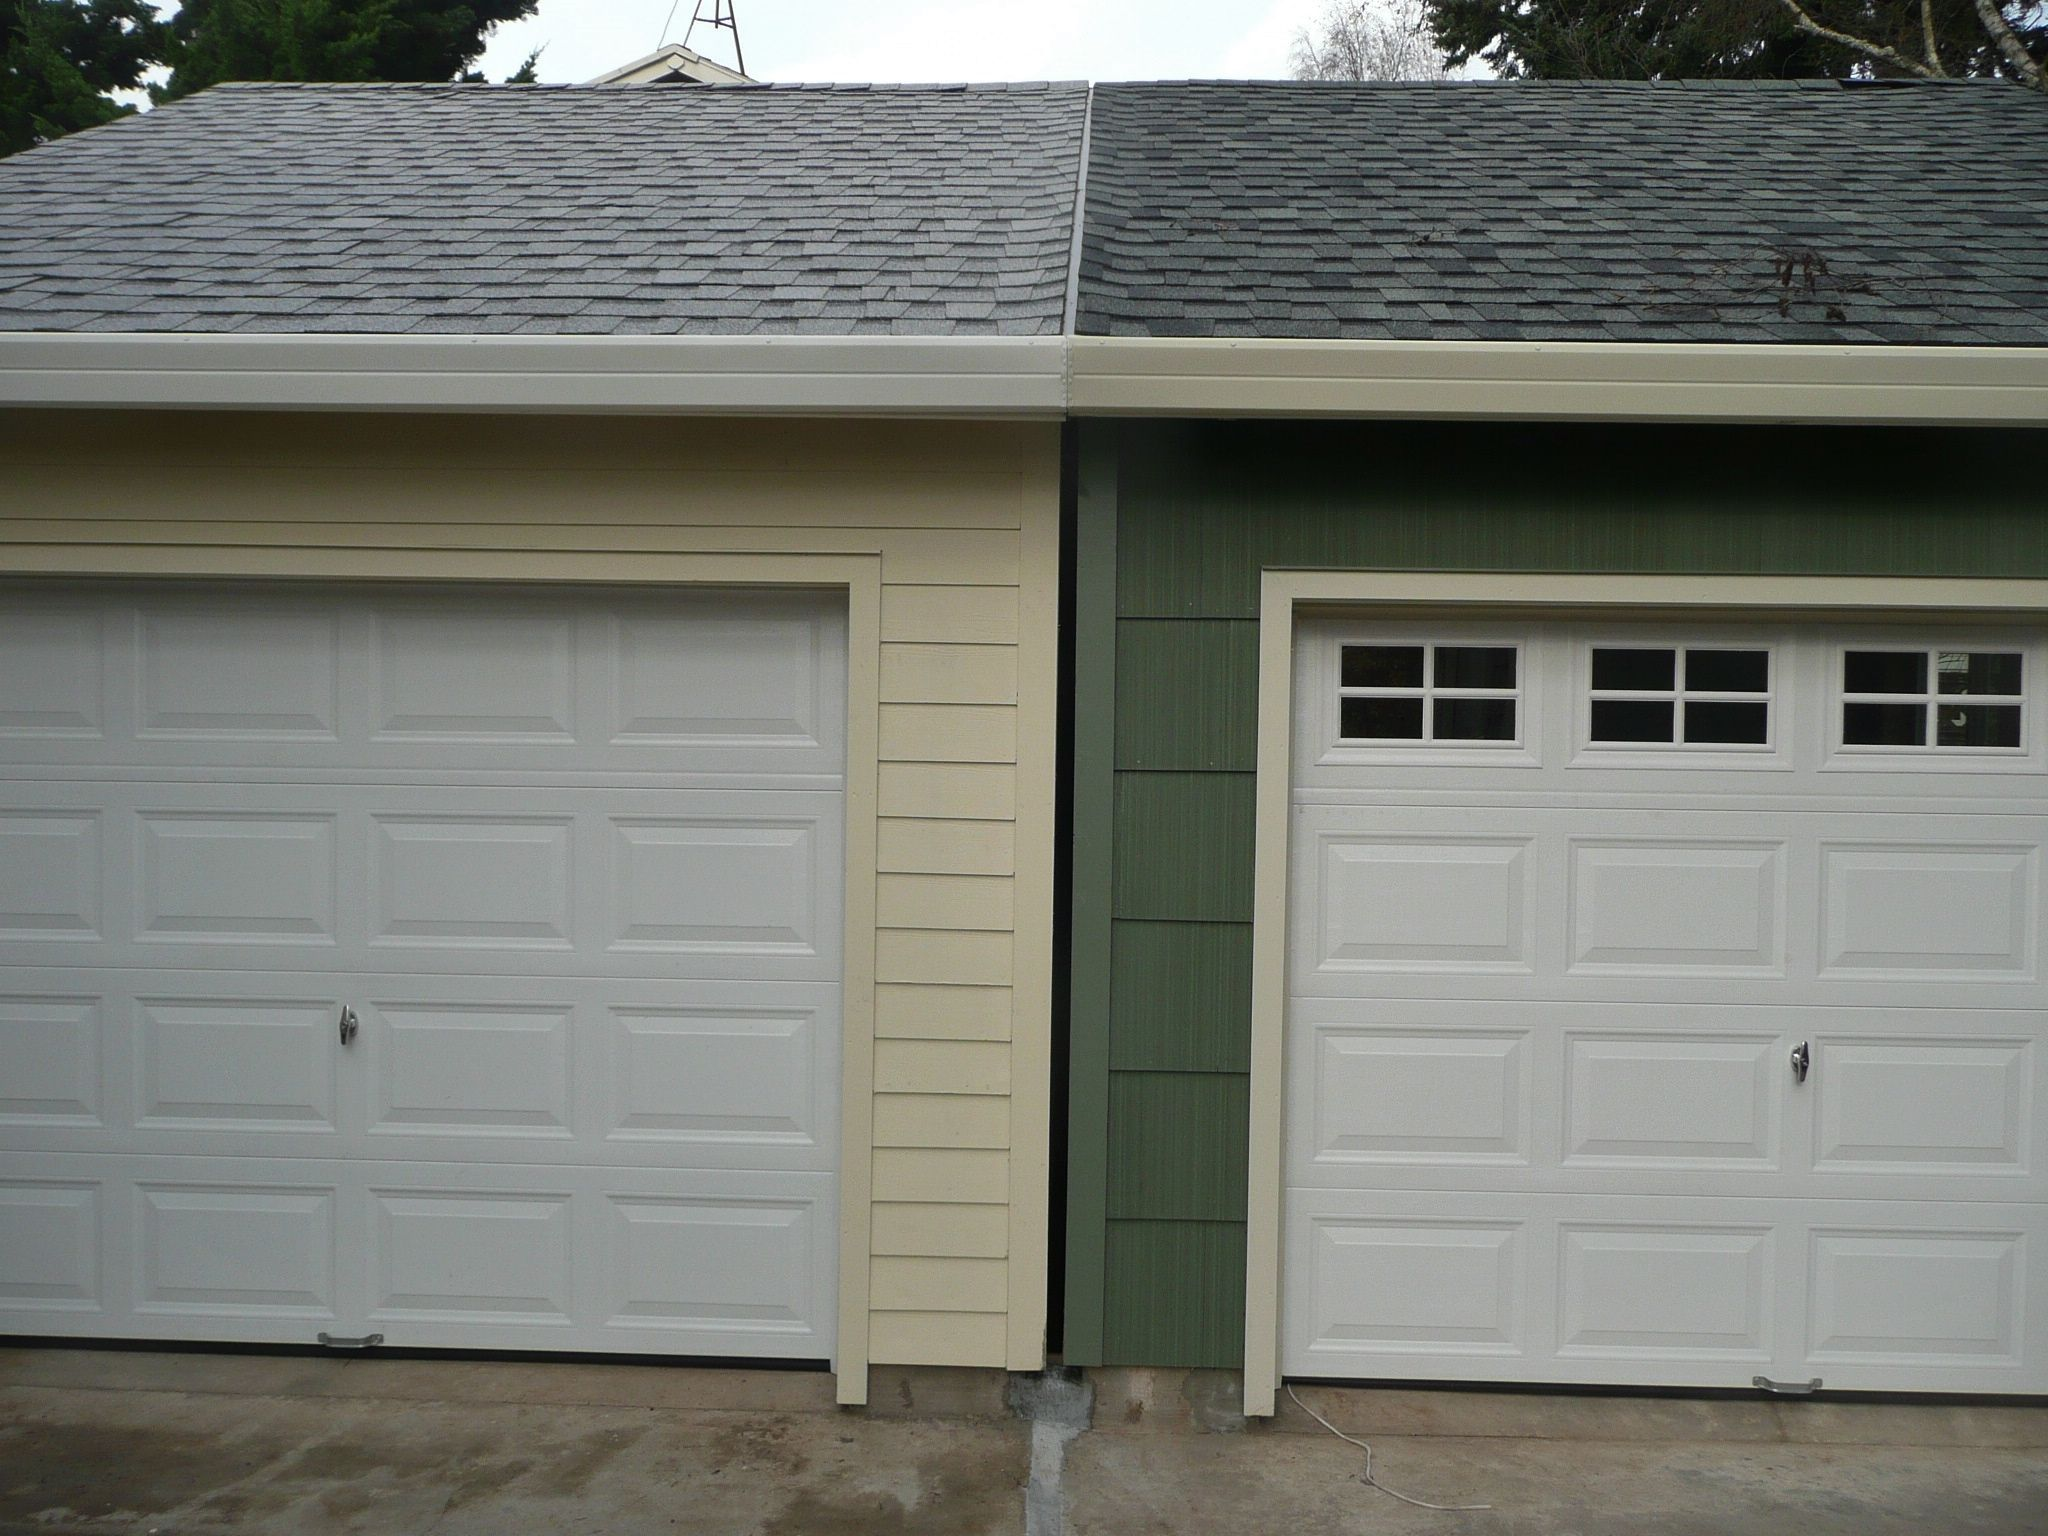 Pittsburgh Garage Door Companies   Garage Doors Come In Many Sizes And  Shapes. Their Functions Range From Basic Security Of